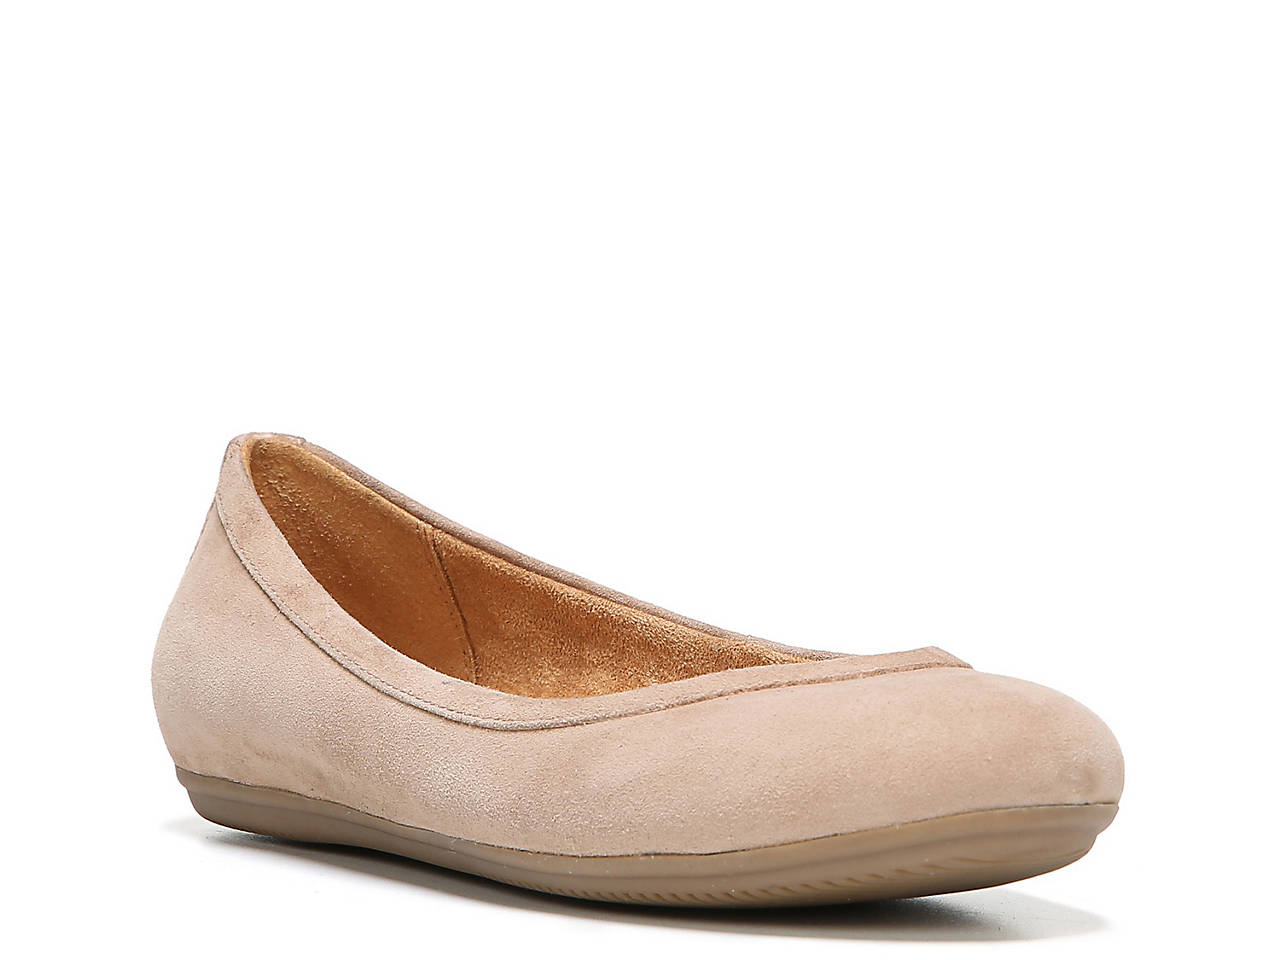 e106b53eb77 Naturalizer Brittany Ballet Flat Women s Shoes